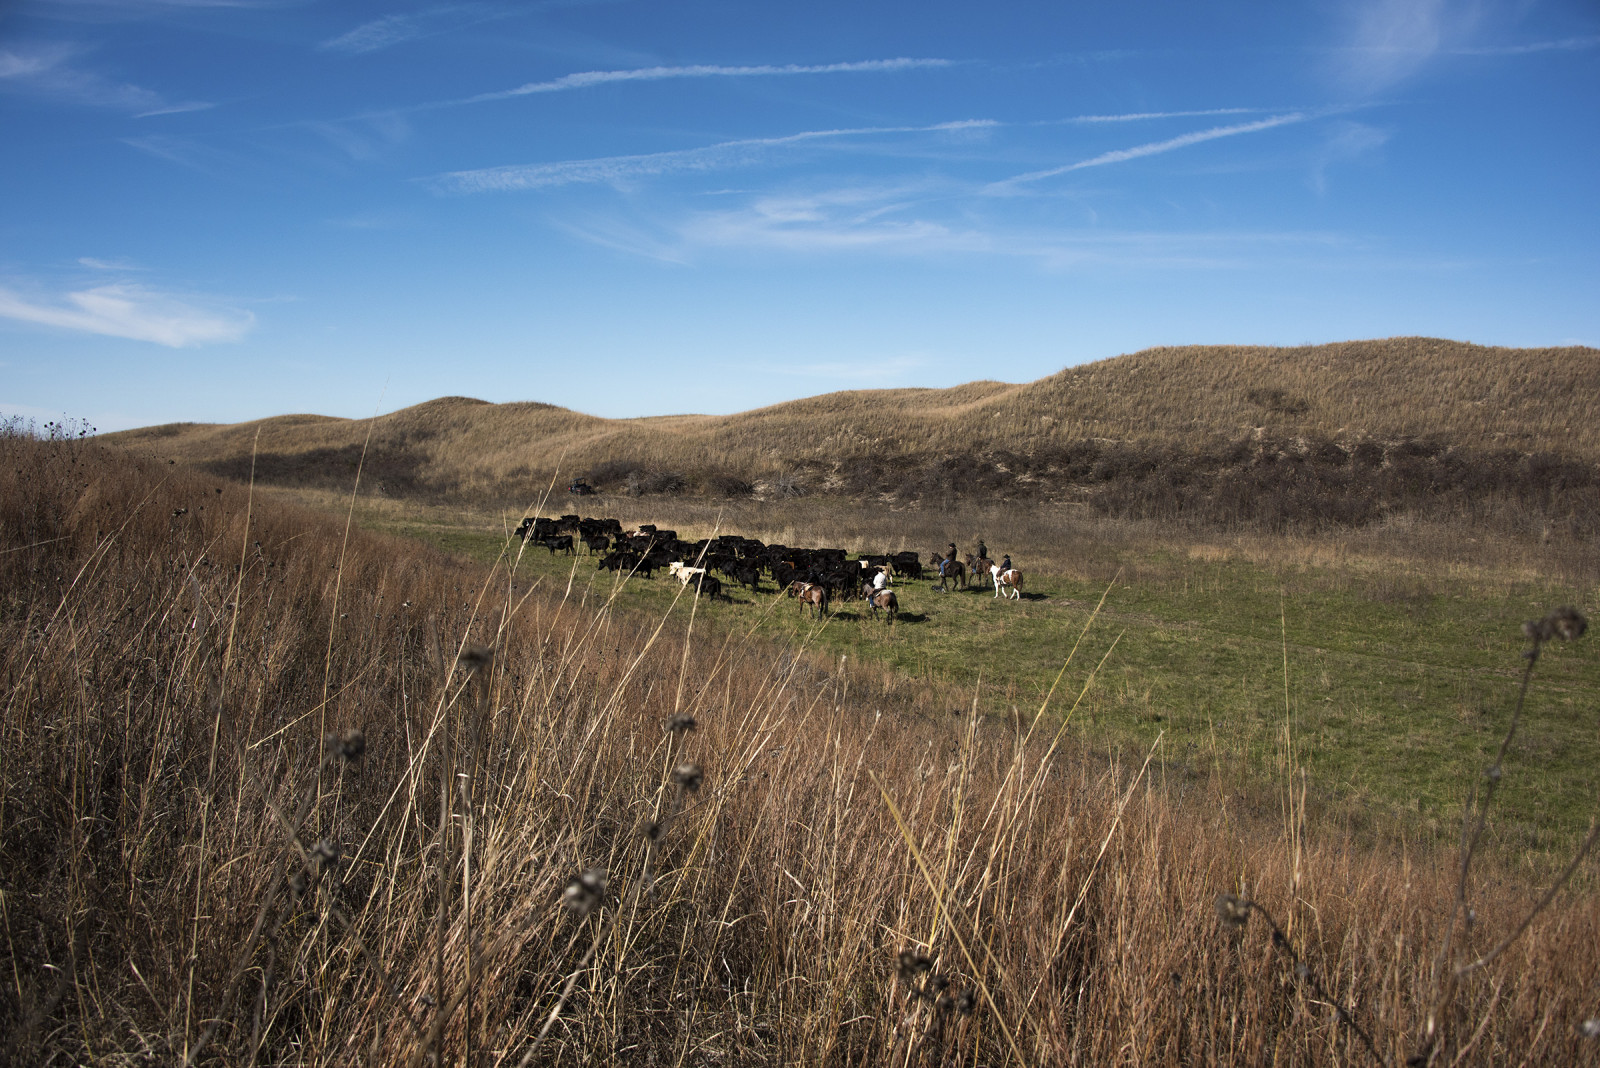 The Switzer family moving cattle through the Sandhills. (Mariah Lundgren)